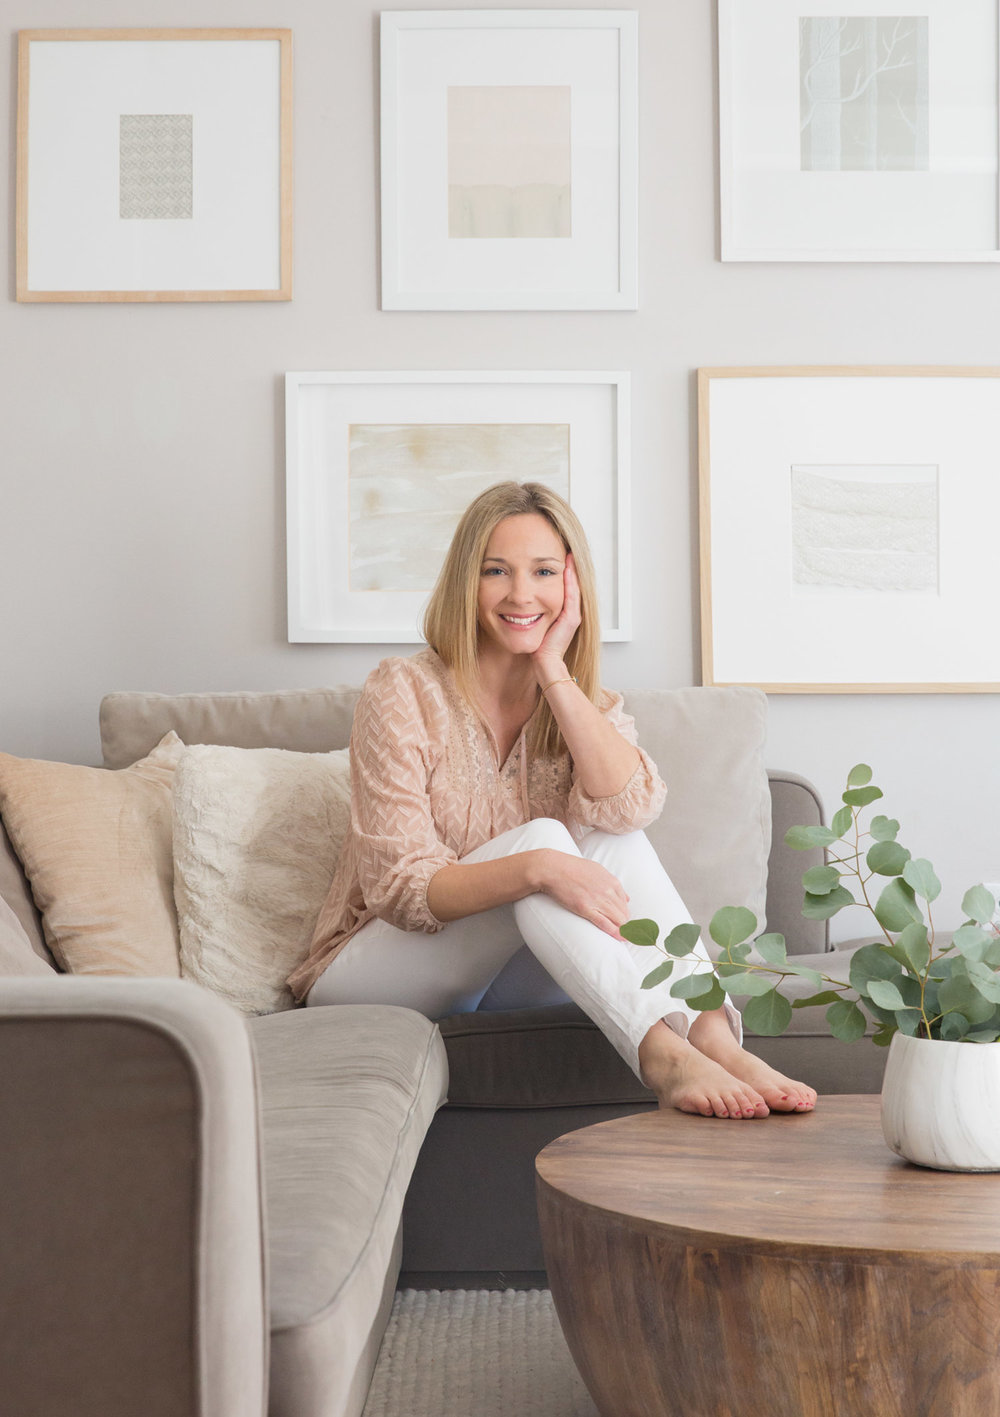 Vancouver based designer and blogger Melissa Barling from WINTER DAISY Interiors